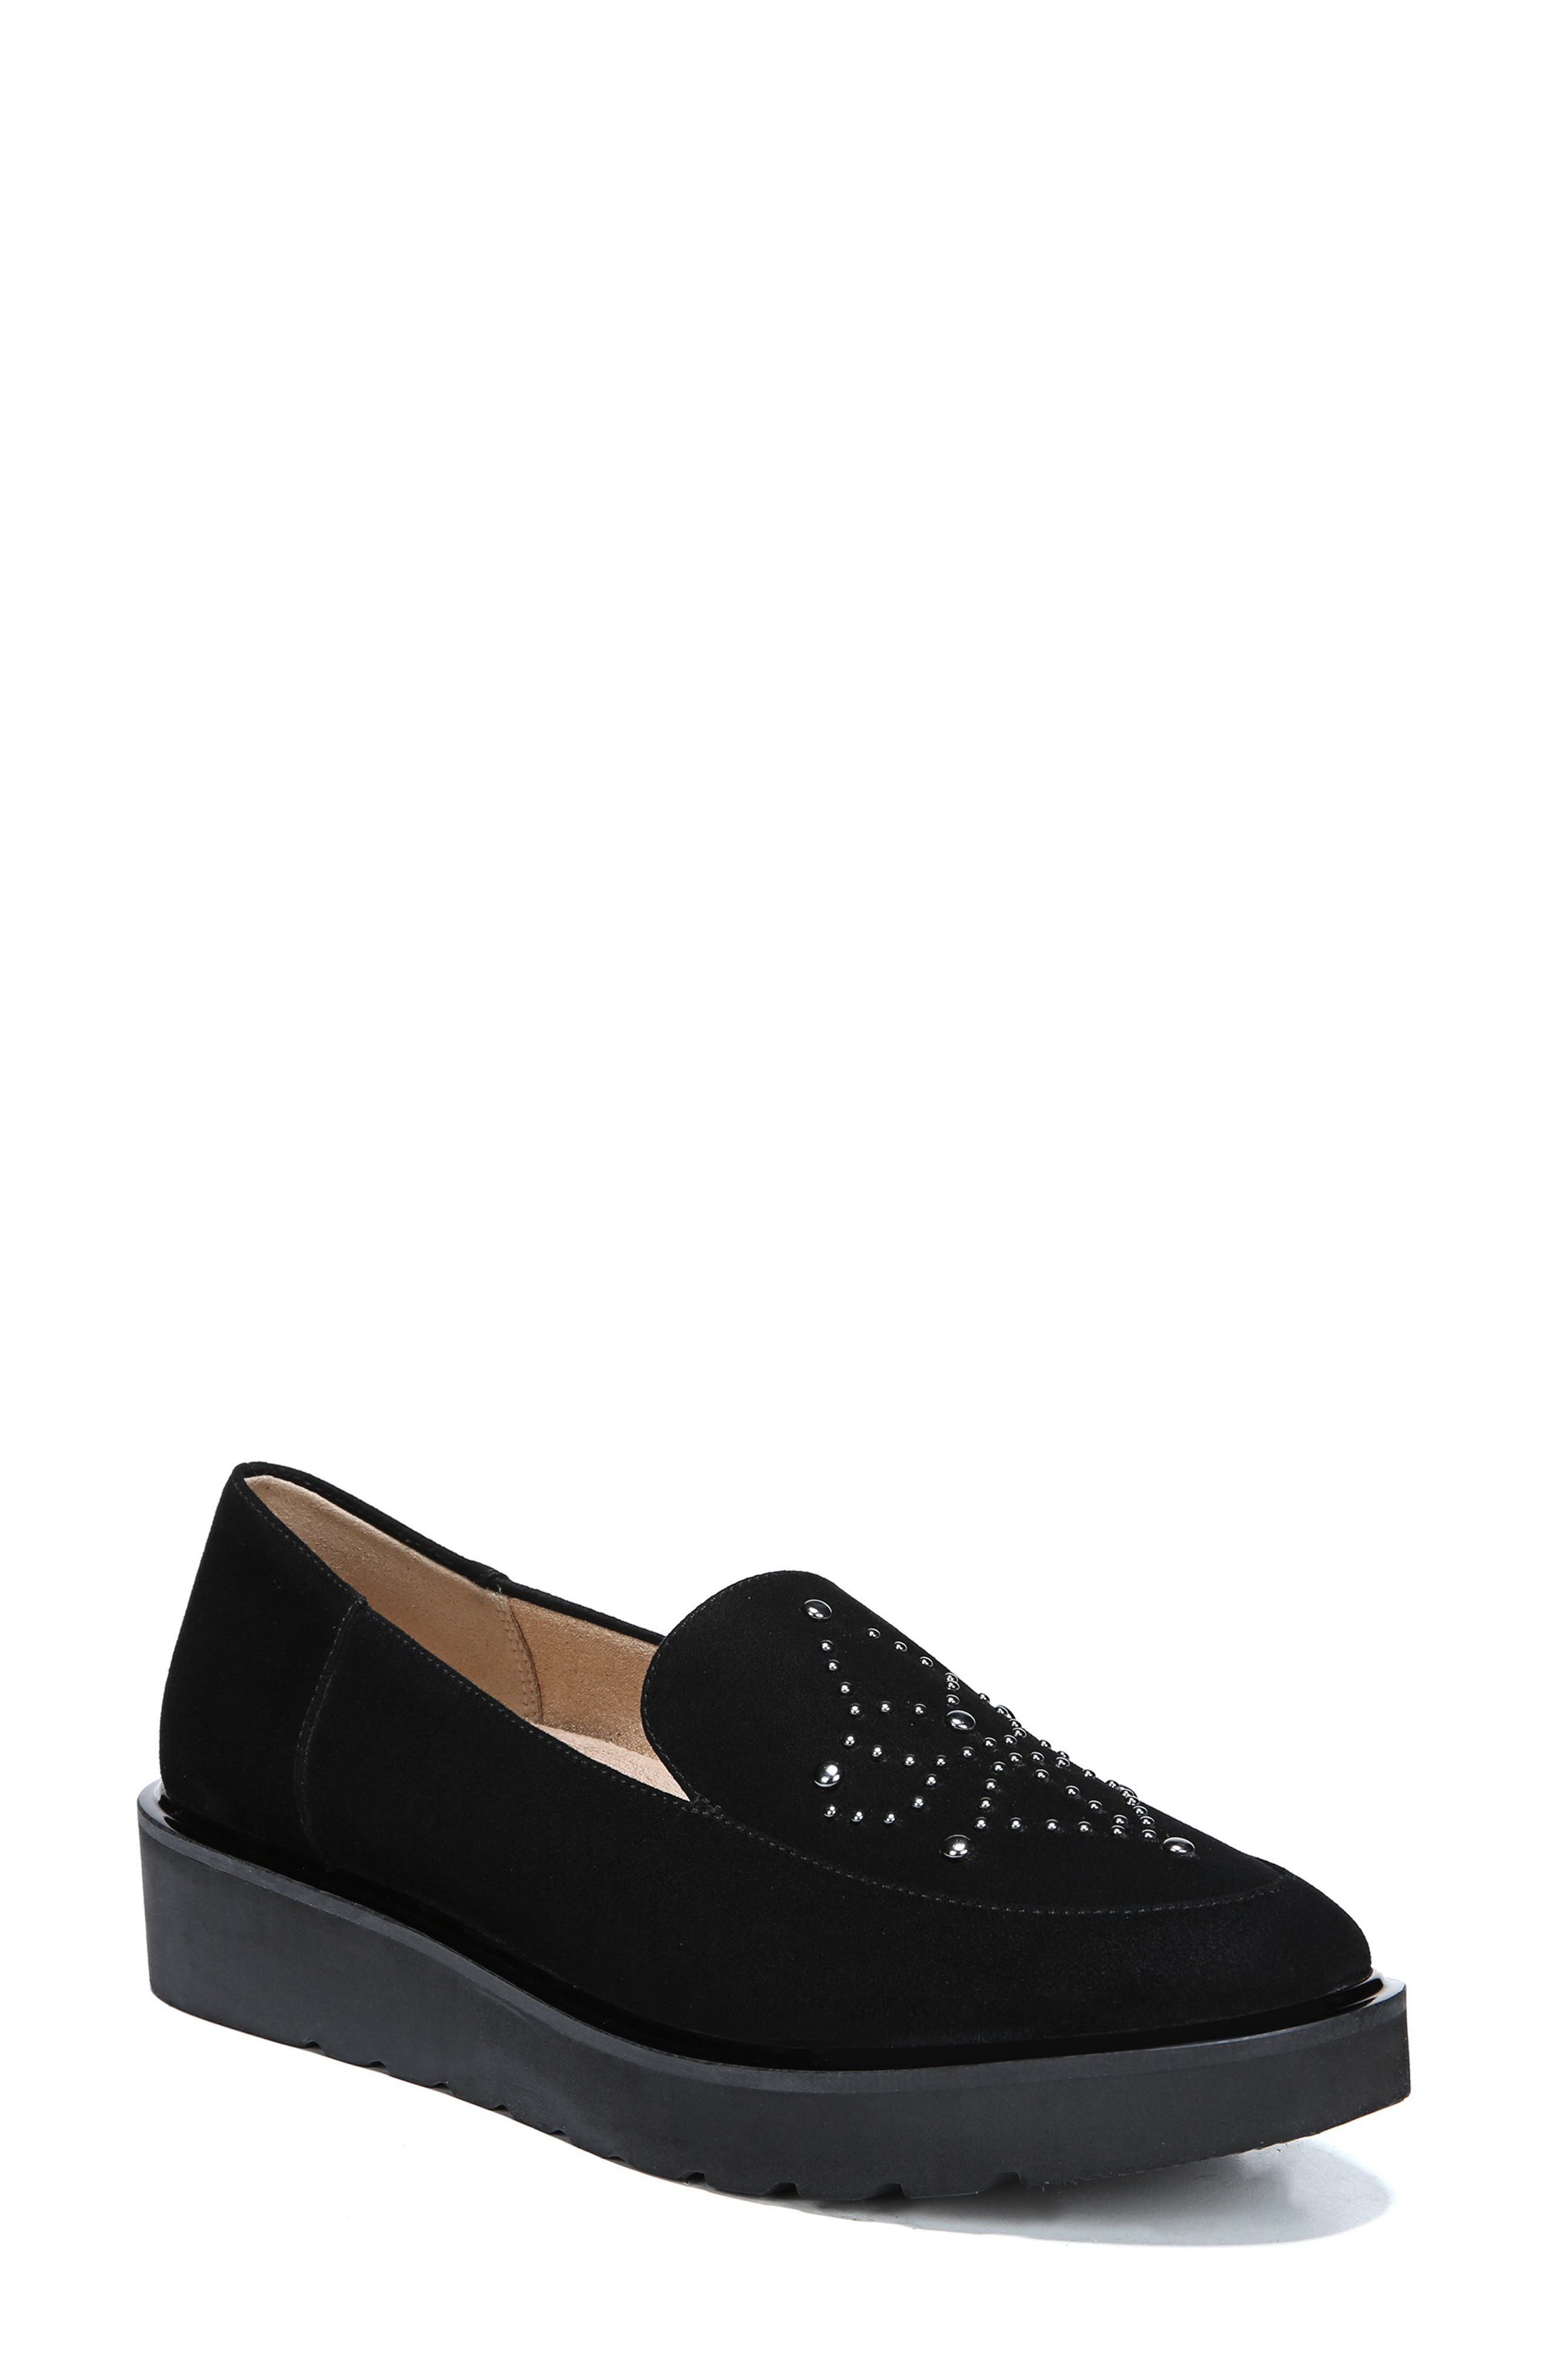 Andie Loafer,                             Main thumbnail 1, color,                             BLACK SUEDE